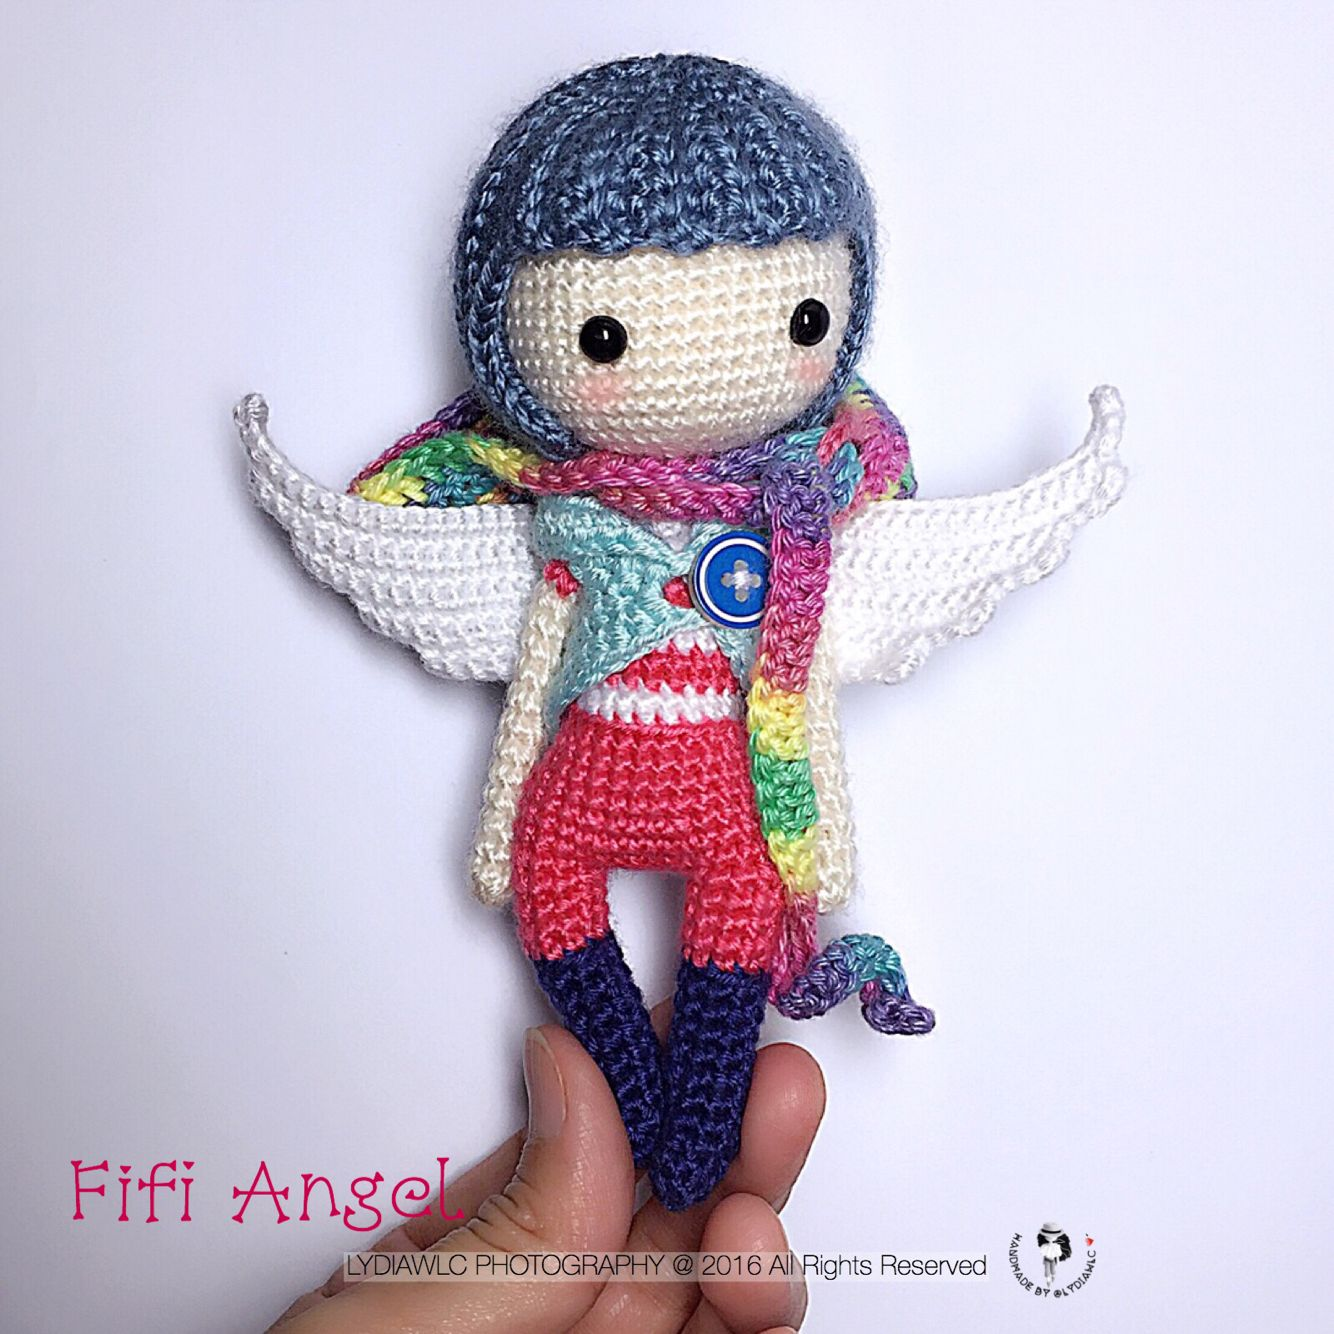 English: Crochet Doll Pattern-Angel Fifi 菲菲 | Pecas, Muñecas y Tejido